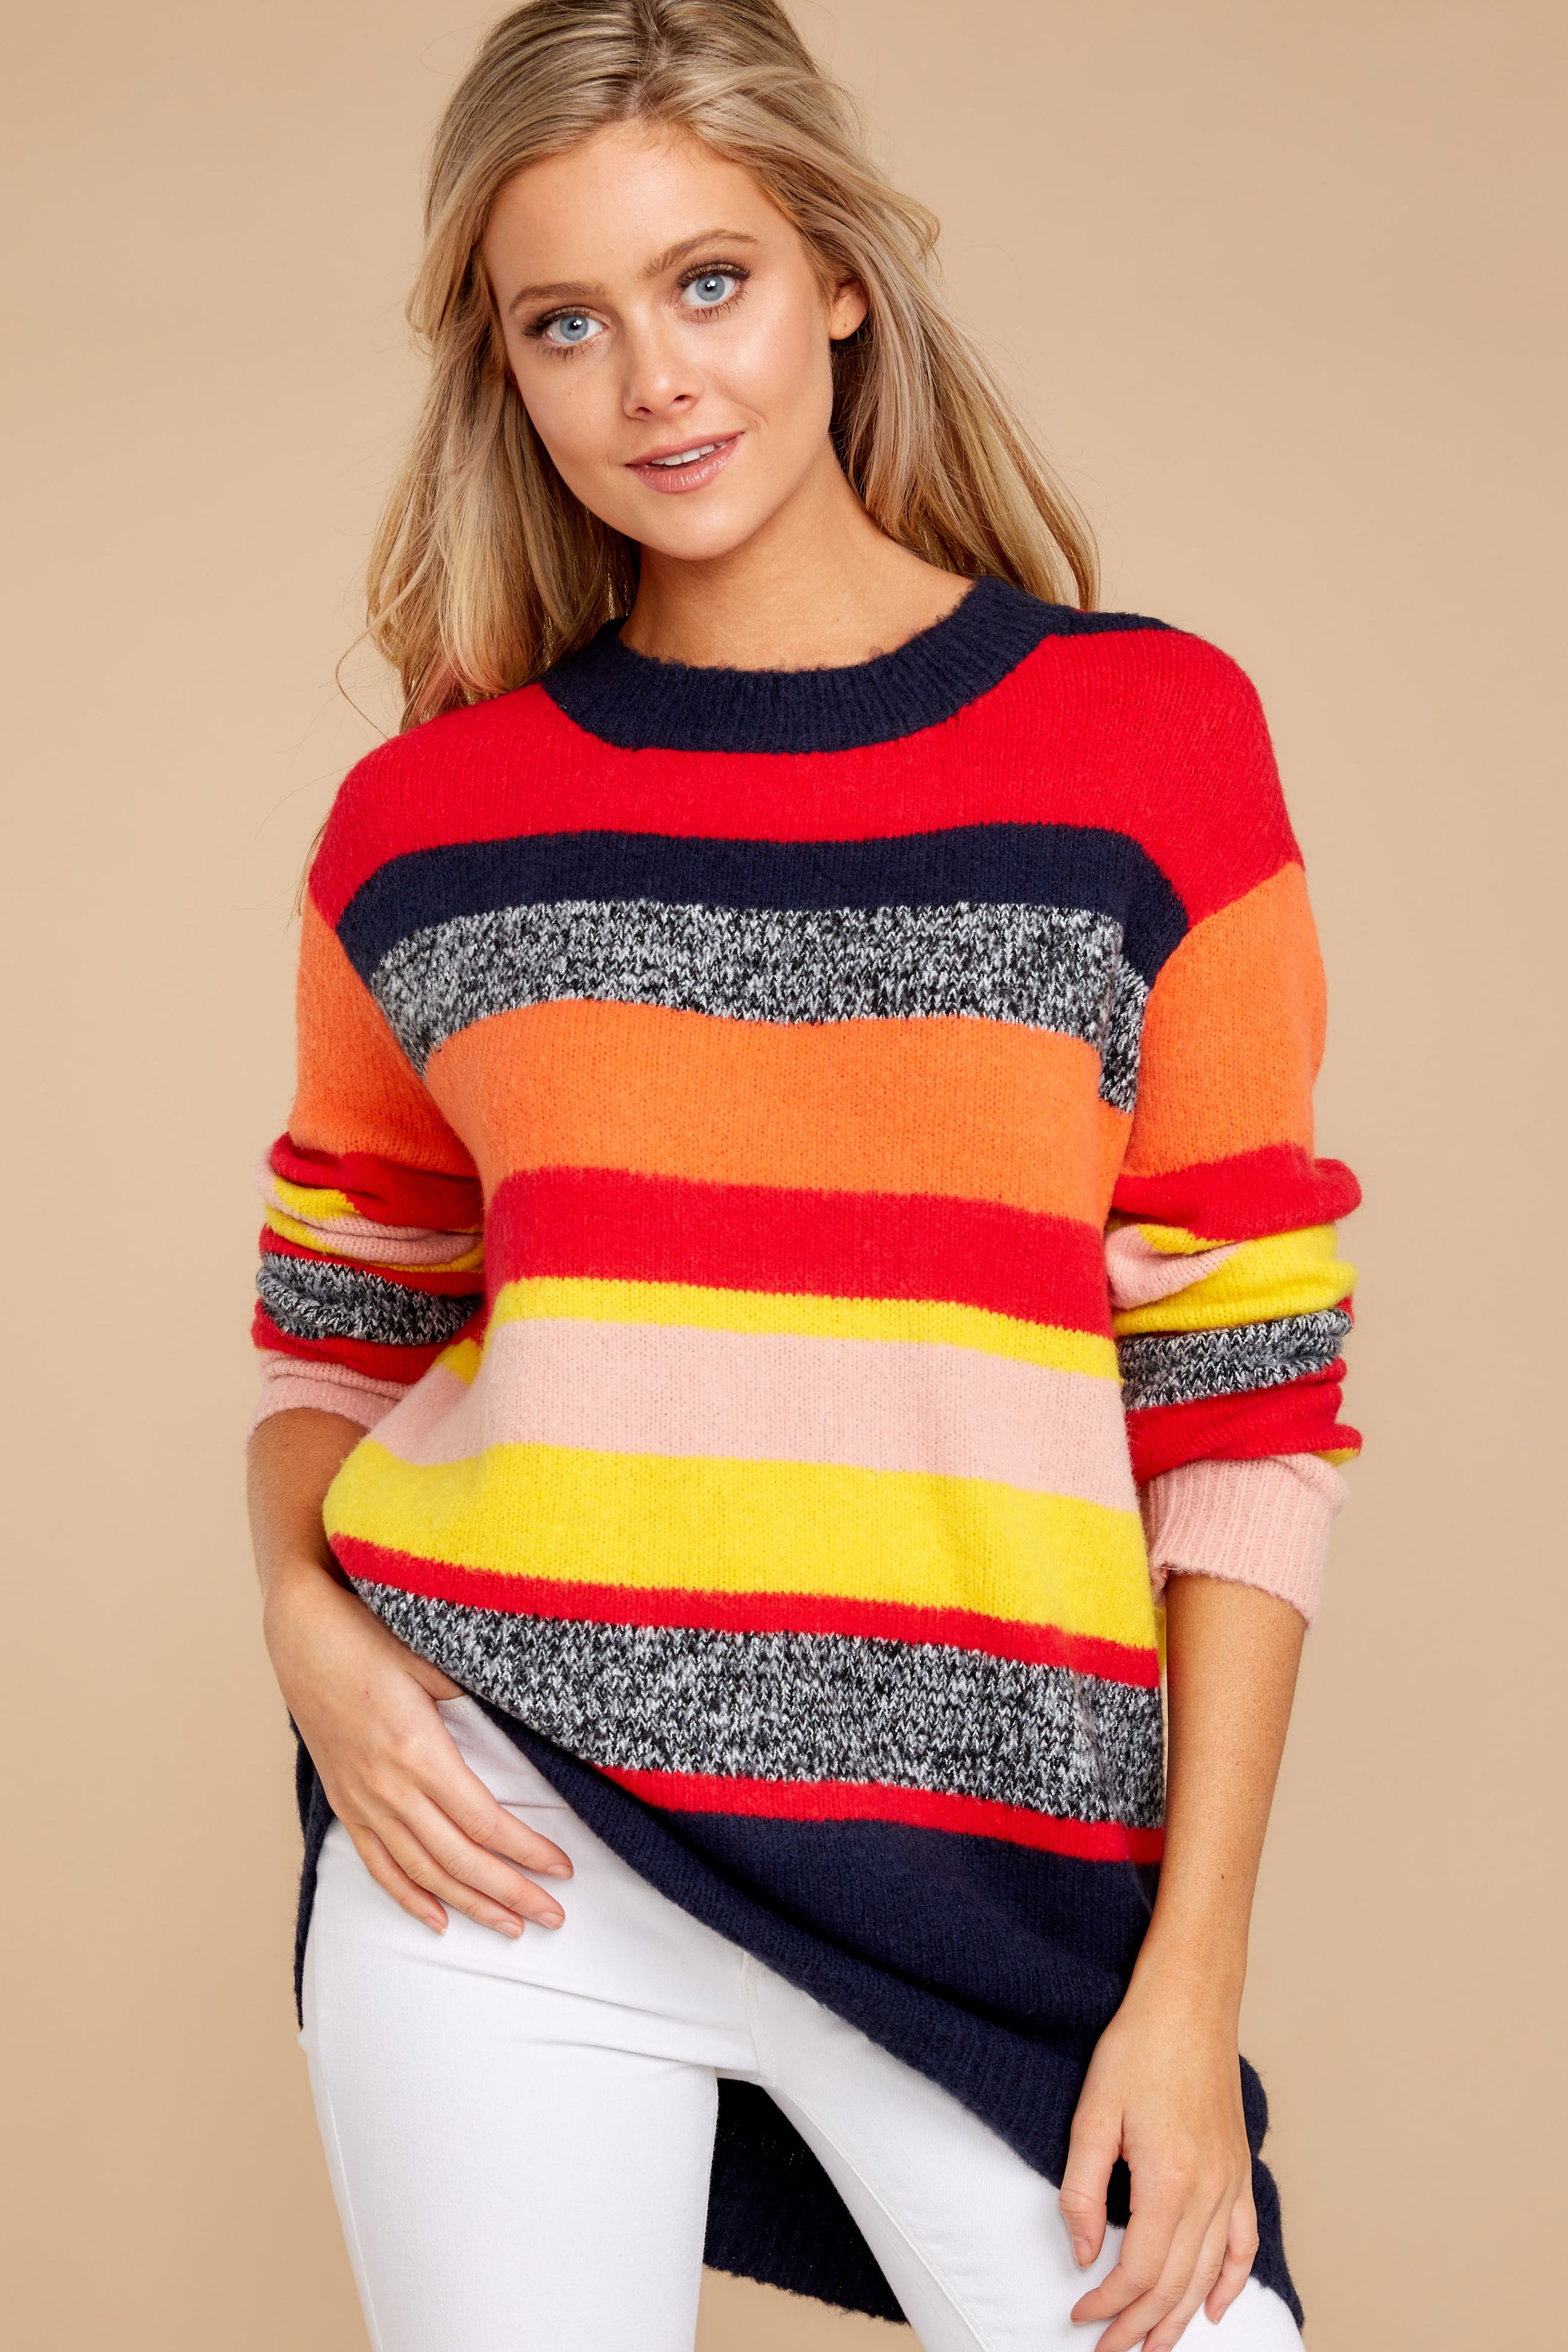 11 Get It Going Red Multi Sweater at reddress.com